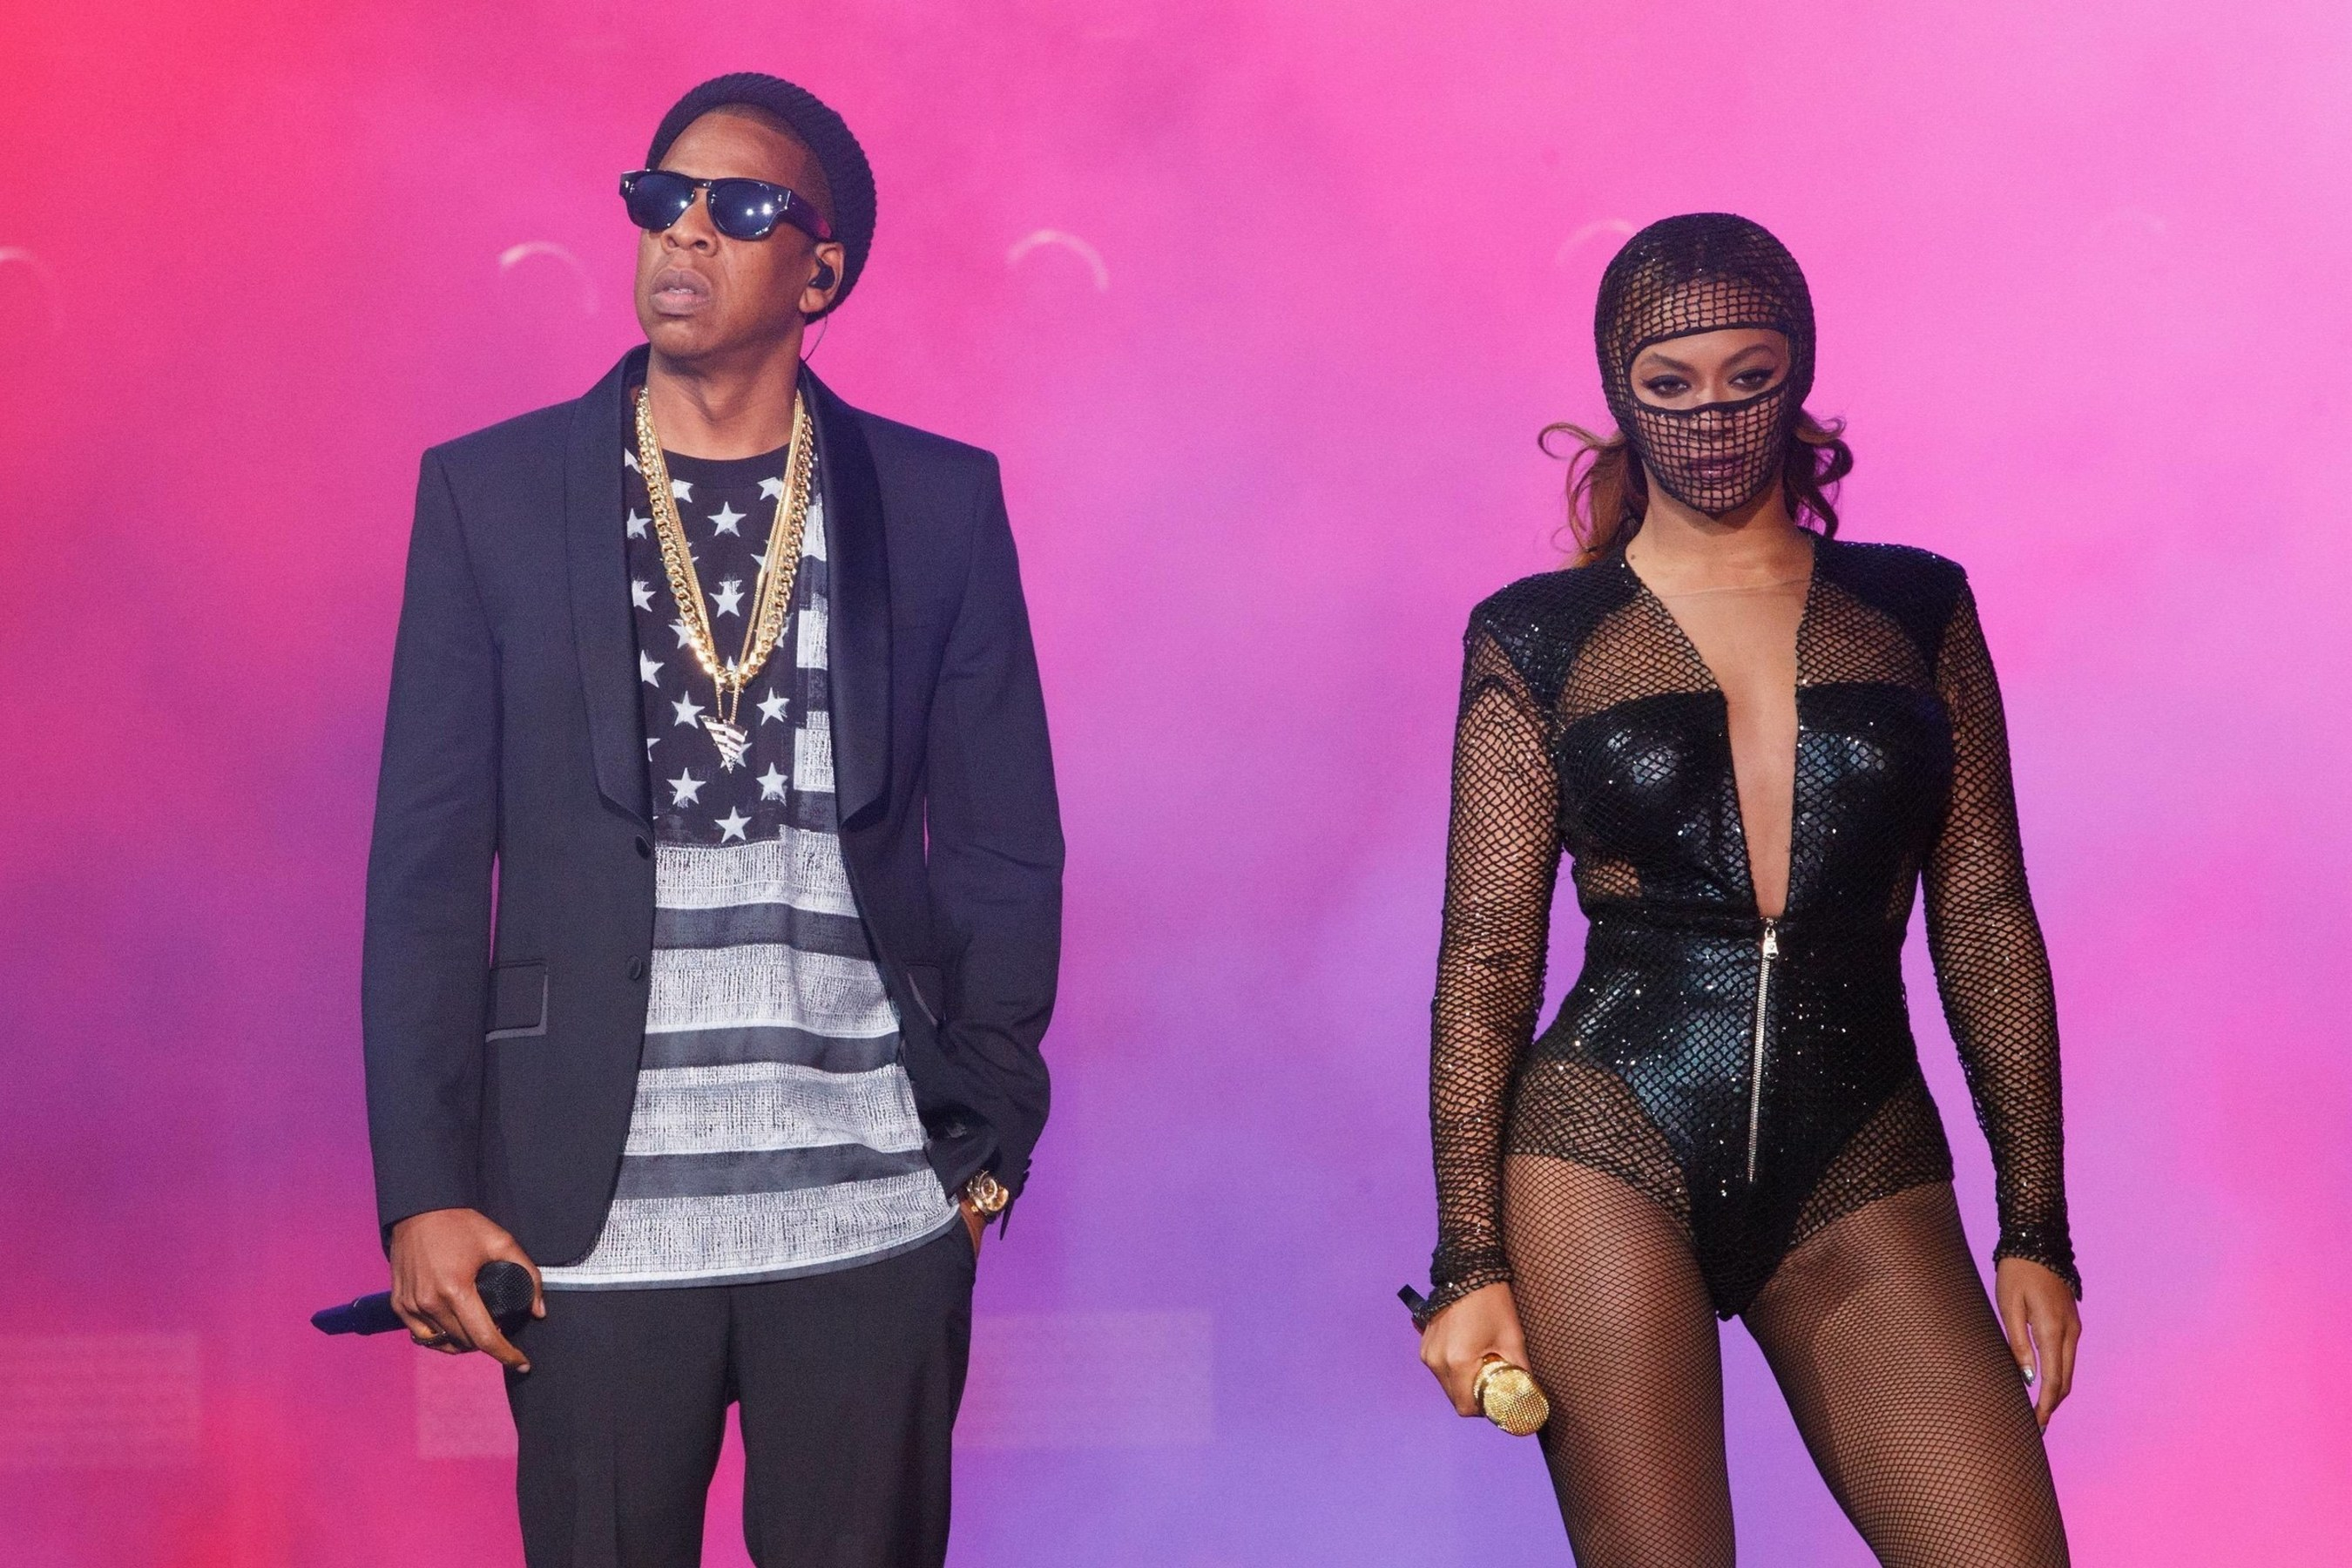 """BEYONCE & JAY Z """"ON THE RUN TOUR"""" EXCLUSIVELY IN PARIS FOR TWO FINAL SHOWS. (PRNewsFoto/Live Nation Entertainment)"""